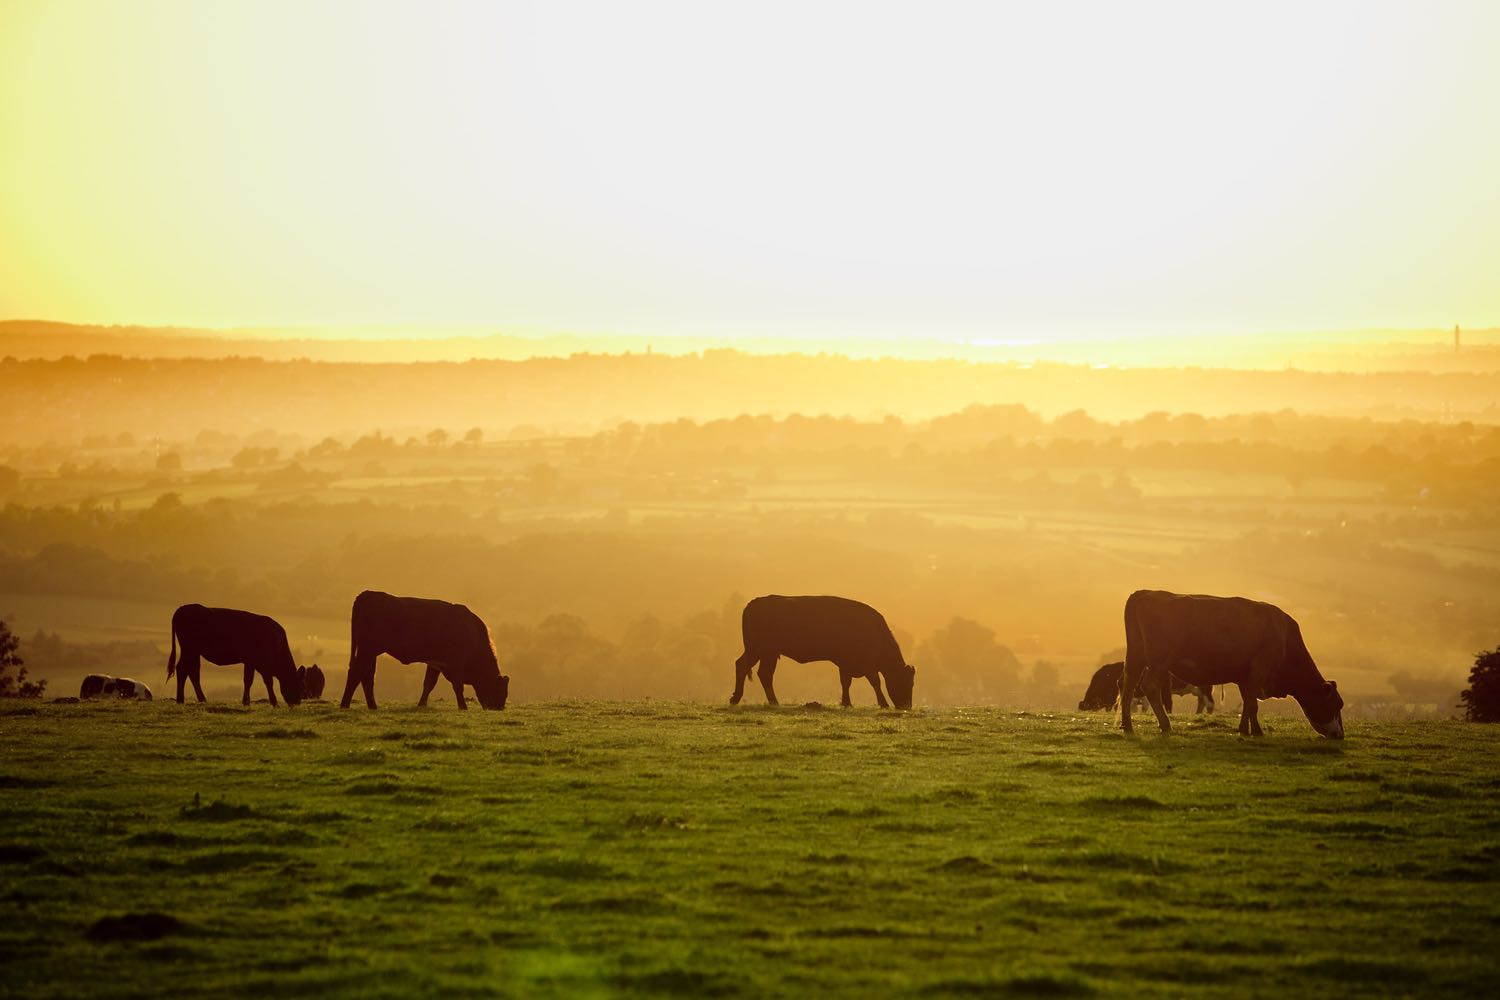 Cows in a Field at Sunset